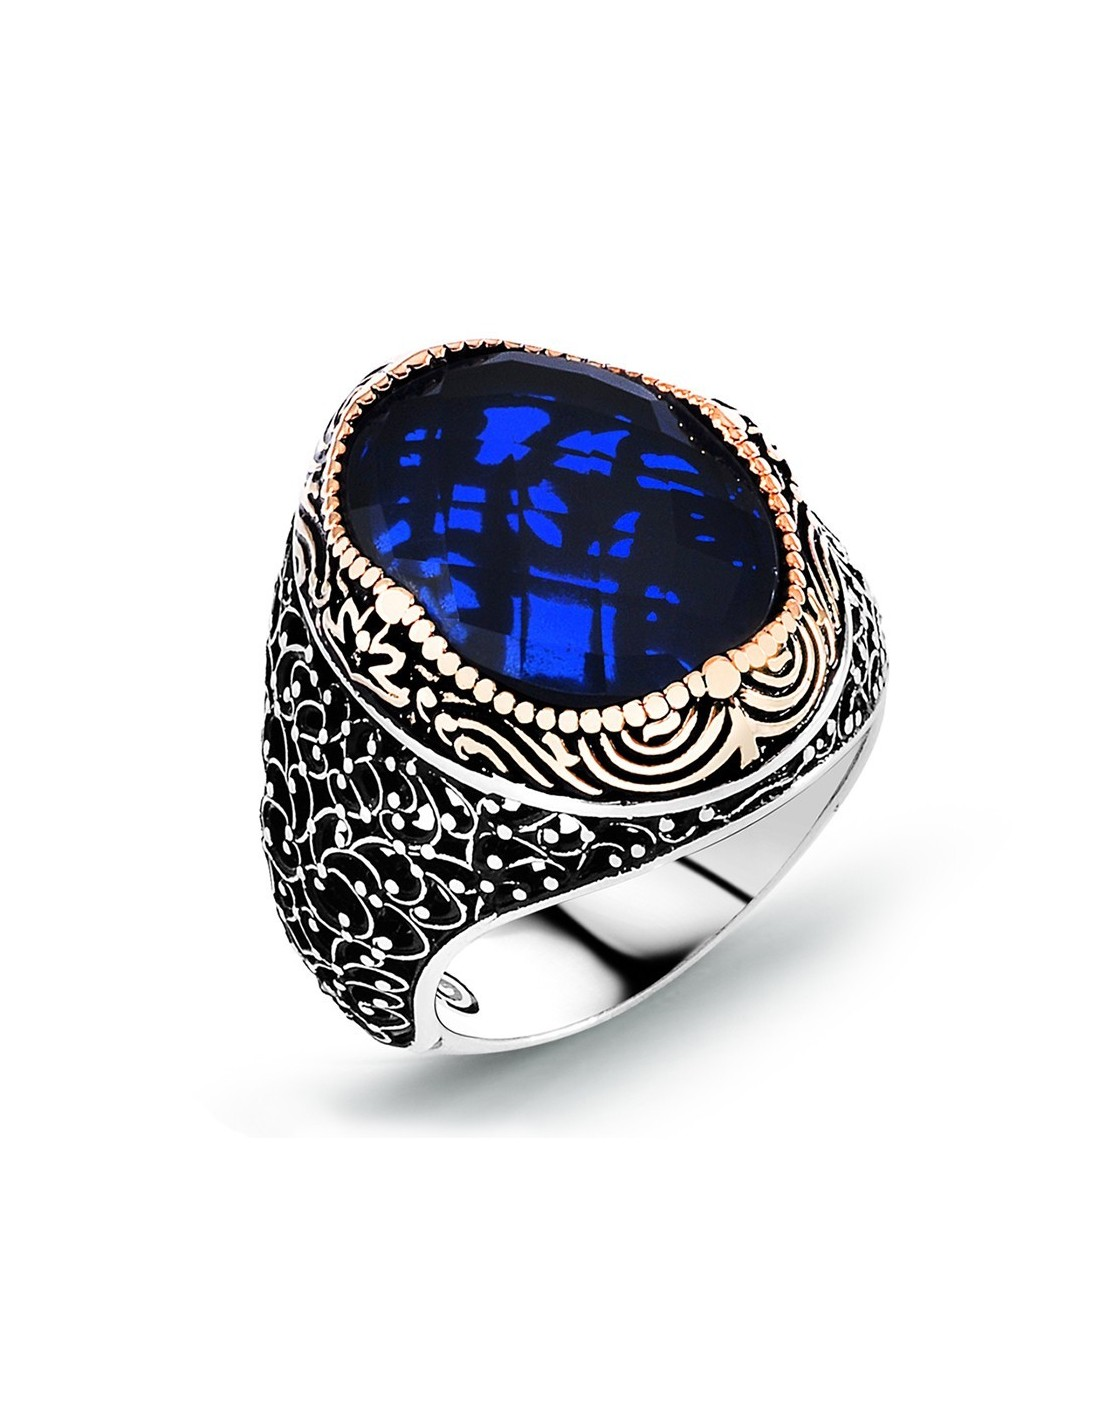 silver men ring with blue stone